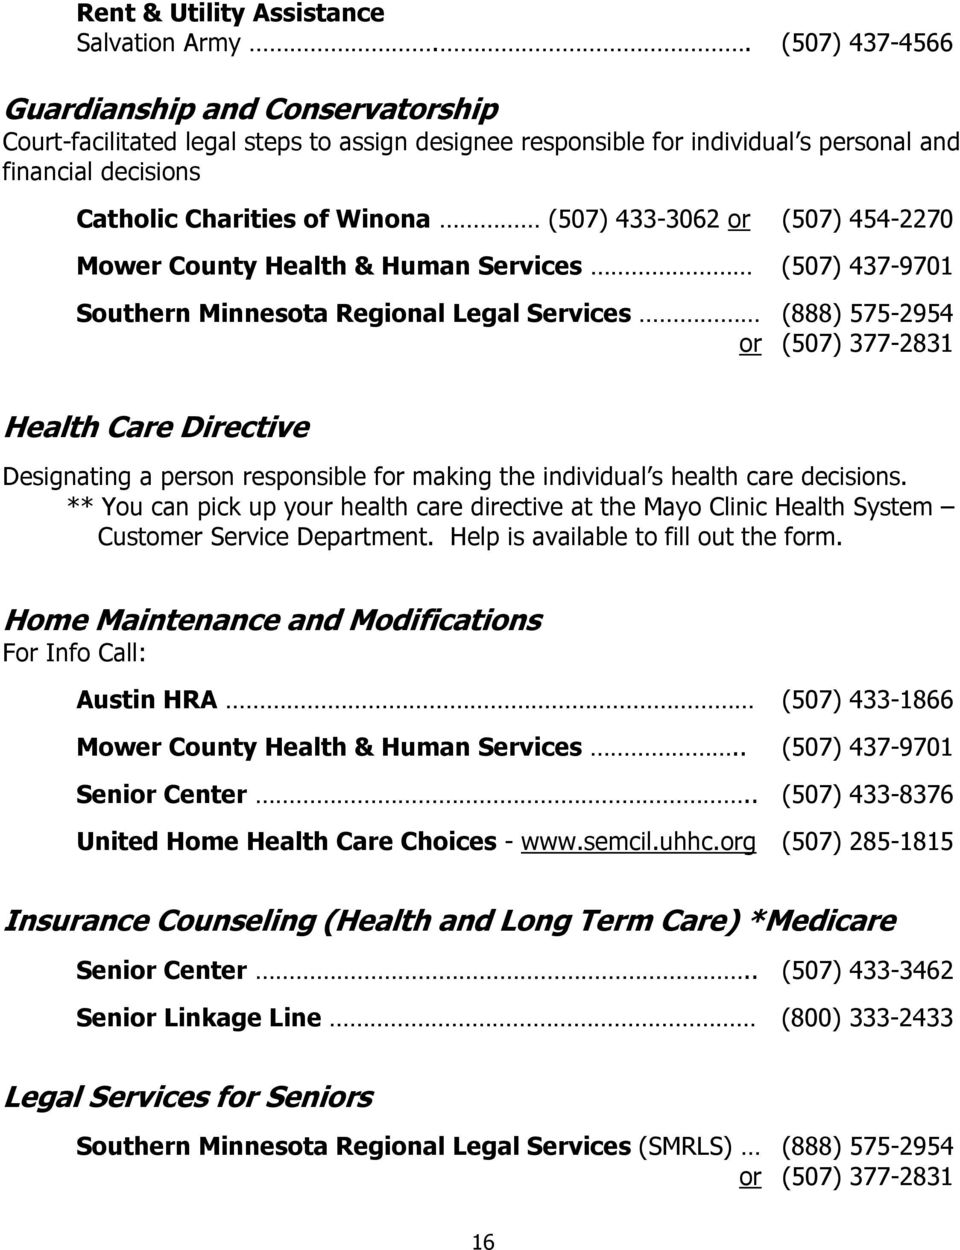 mower county health and human services